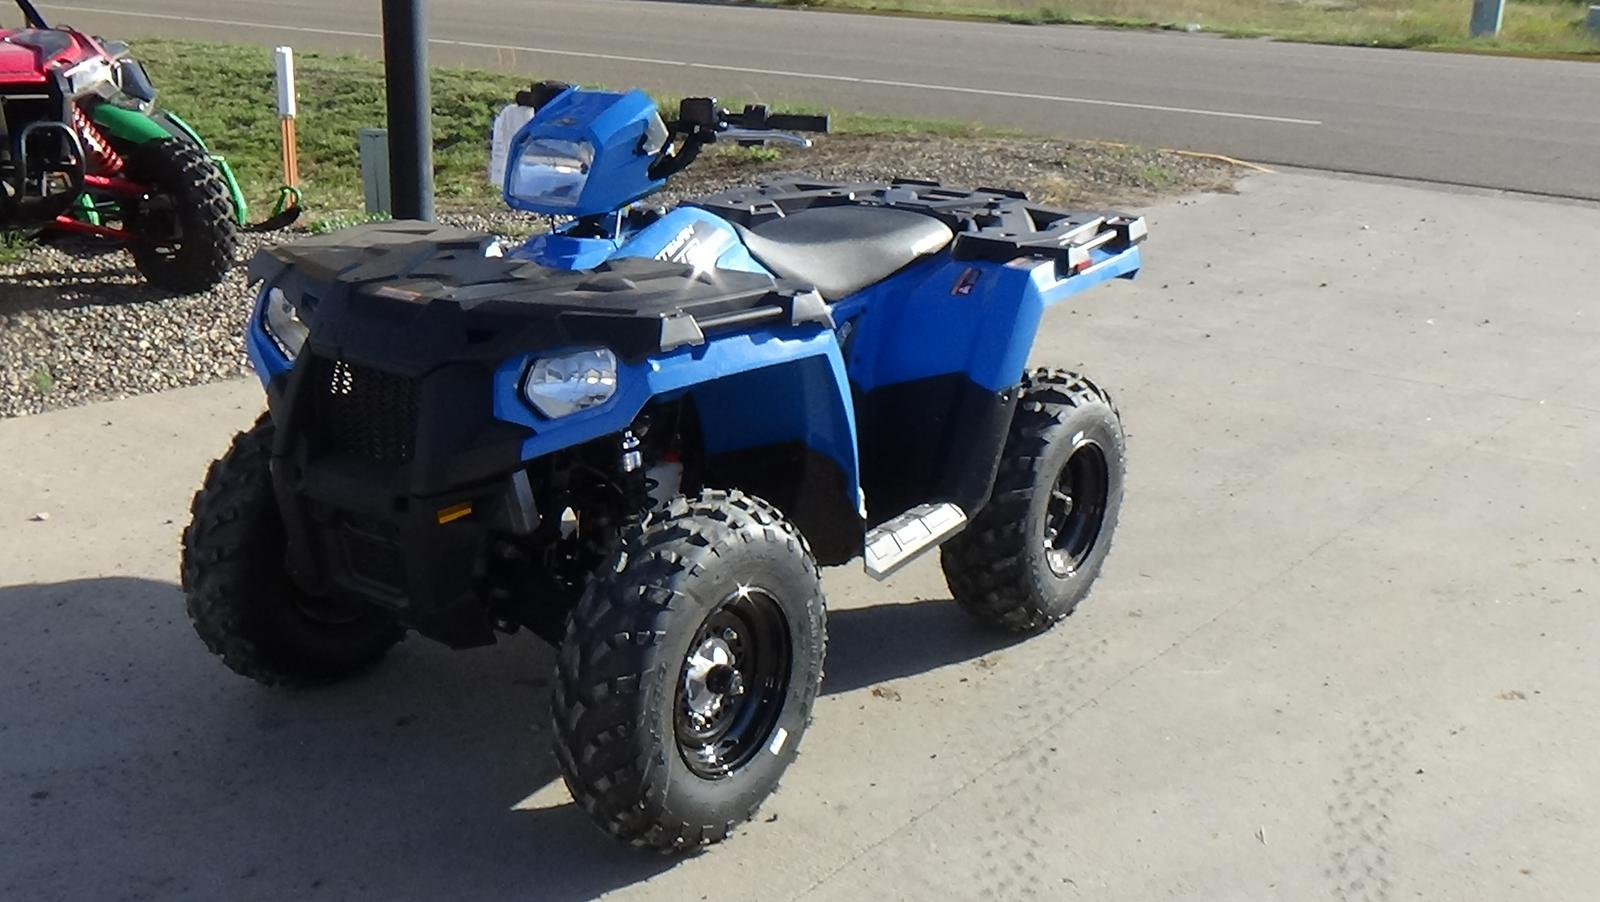 2019 polaris industries sportsman� 570 eps - velocity blue